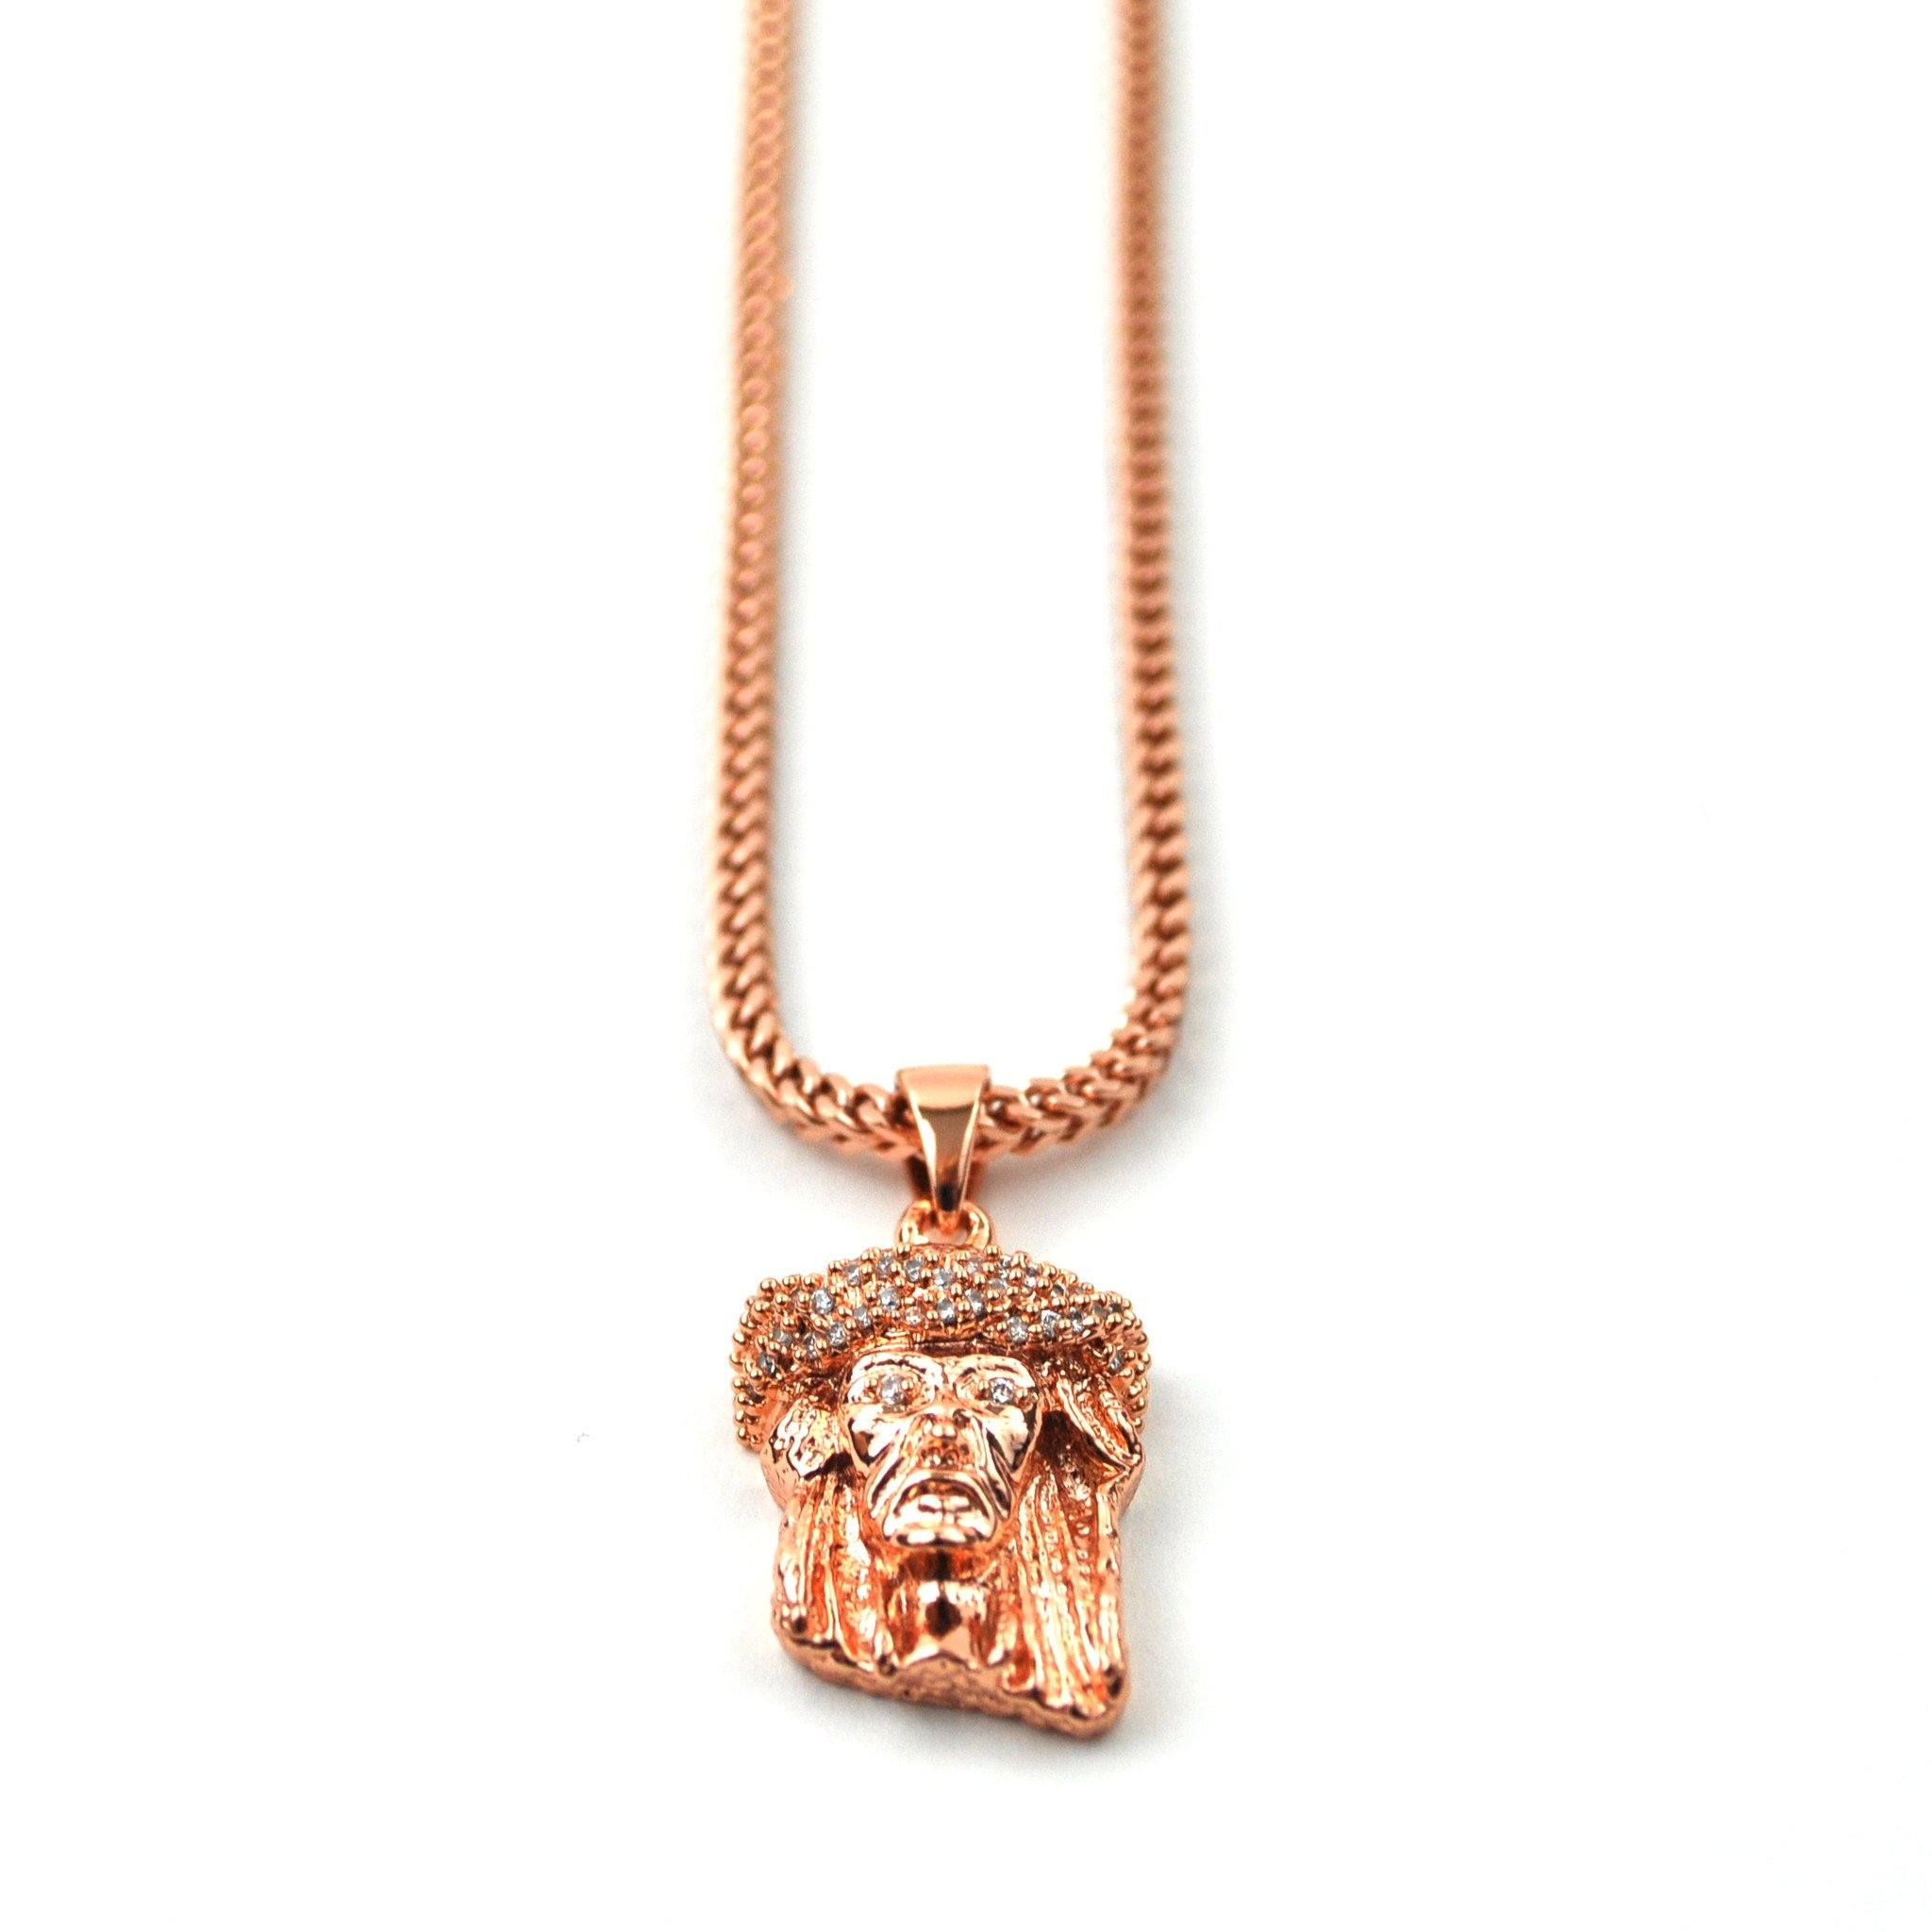 Rose gold jesus piece 89 the gold gods jewelry jesus piece rose gold edition aloadofball Image collections